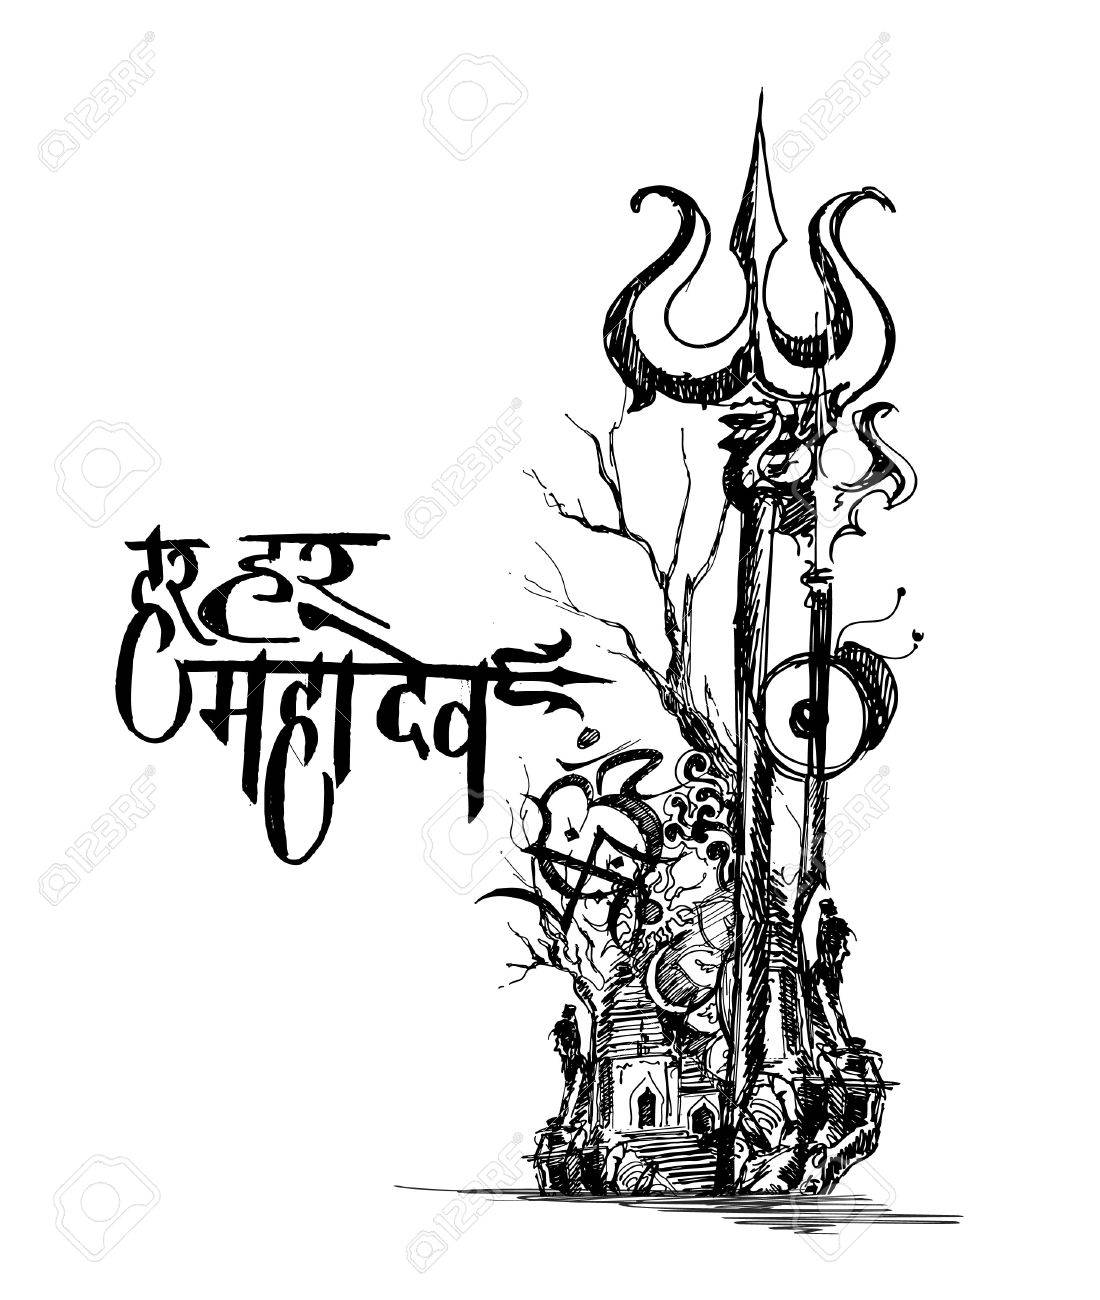 Illustration of floral trishul for lord shiva sketch monochrome with text or har har mahadev